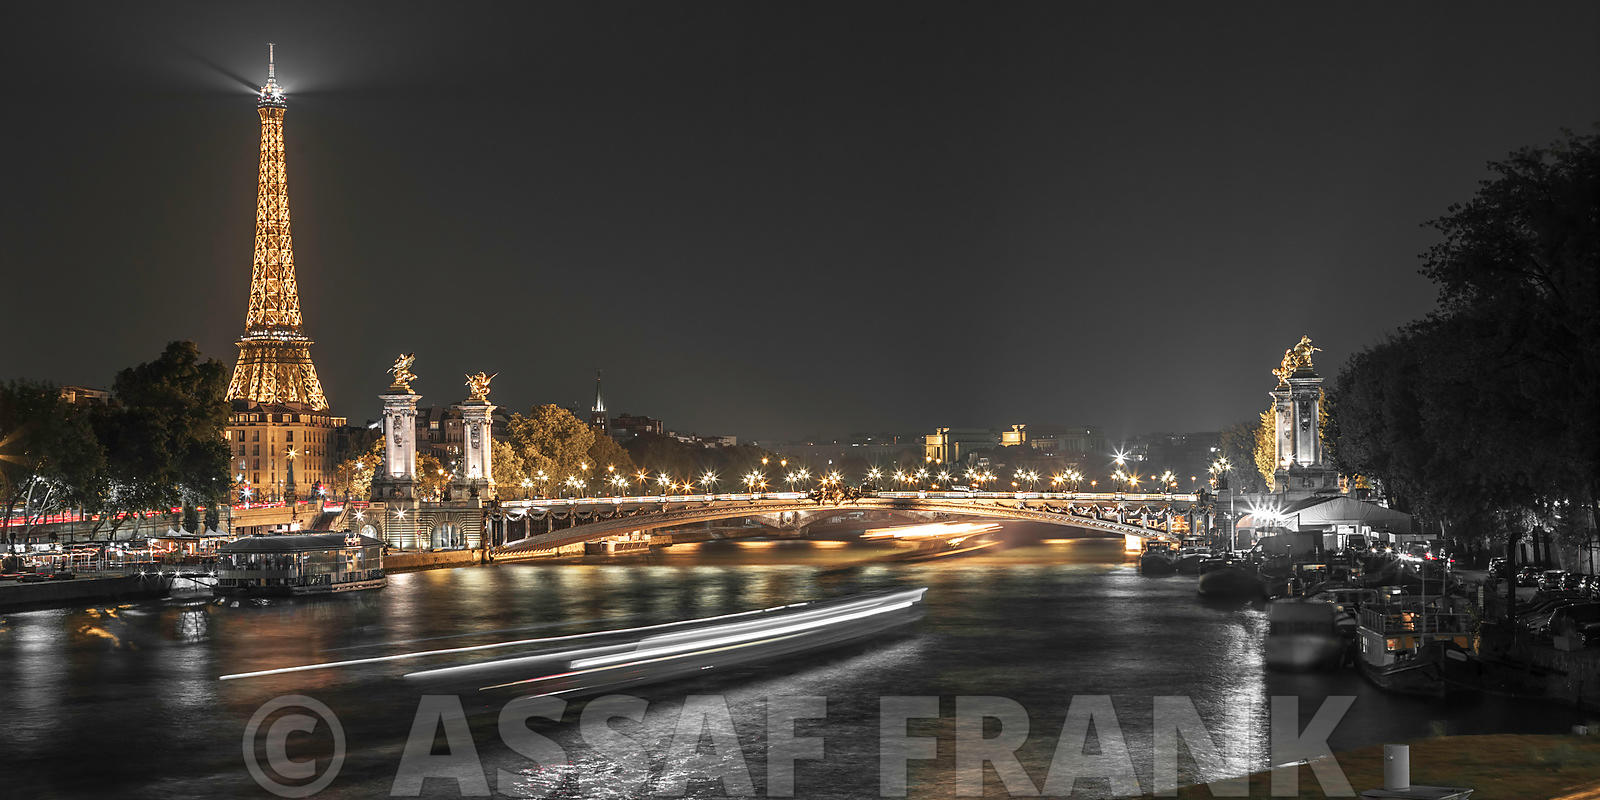 View of the river Seine with the Pont Alexandre III and Eiffel Tower in the background during night, Paris, France